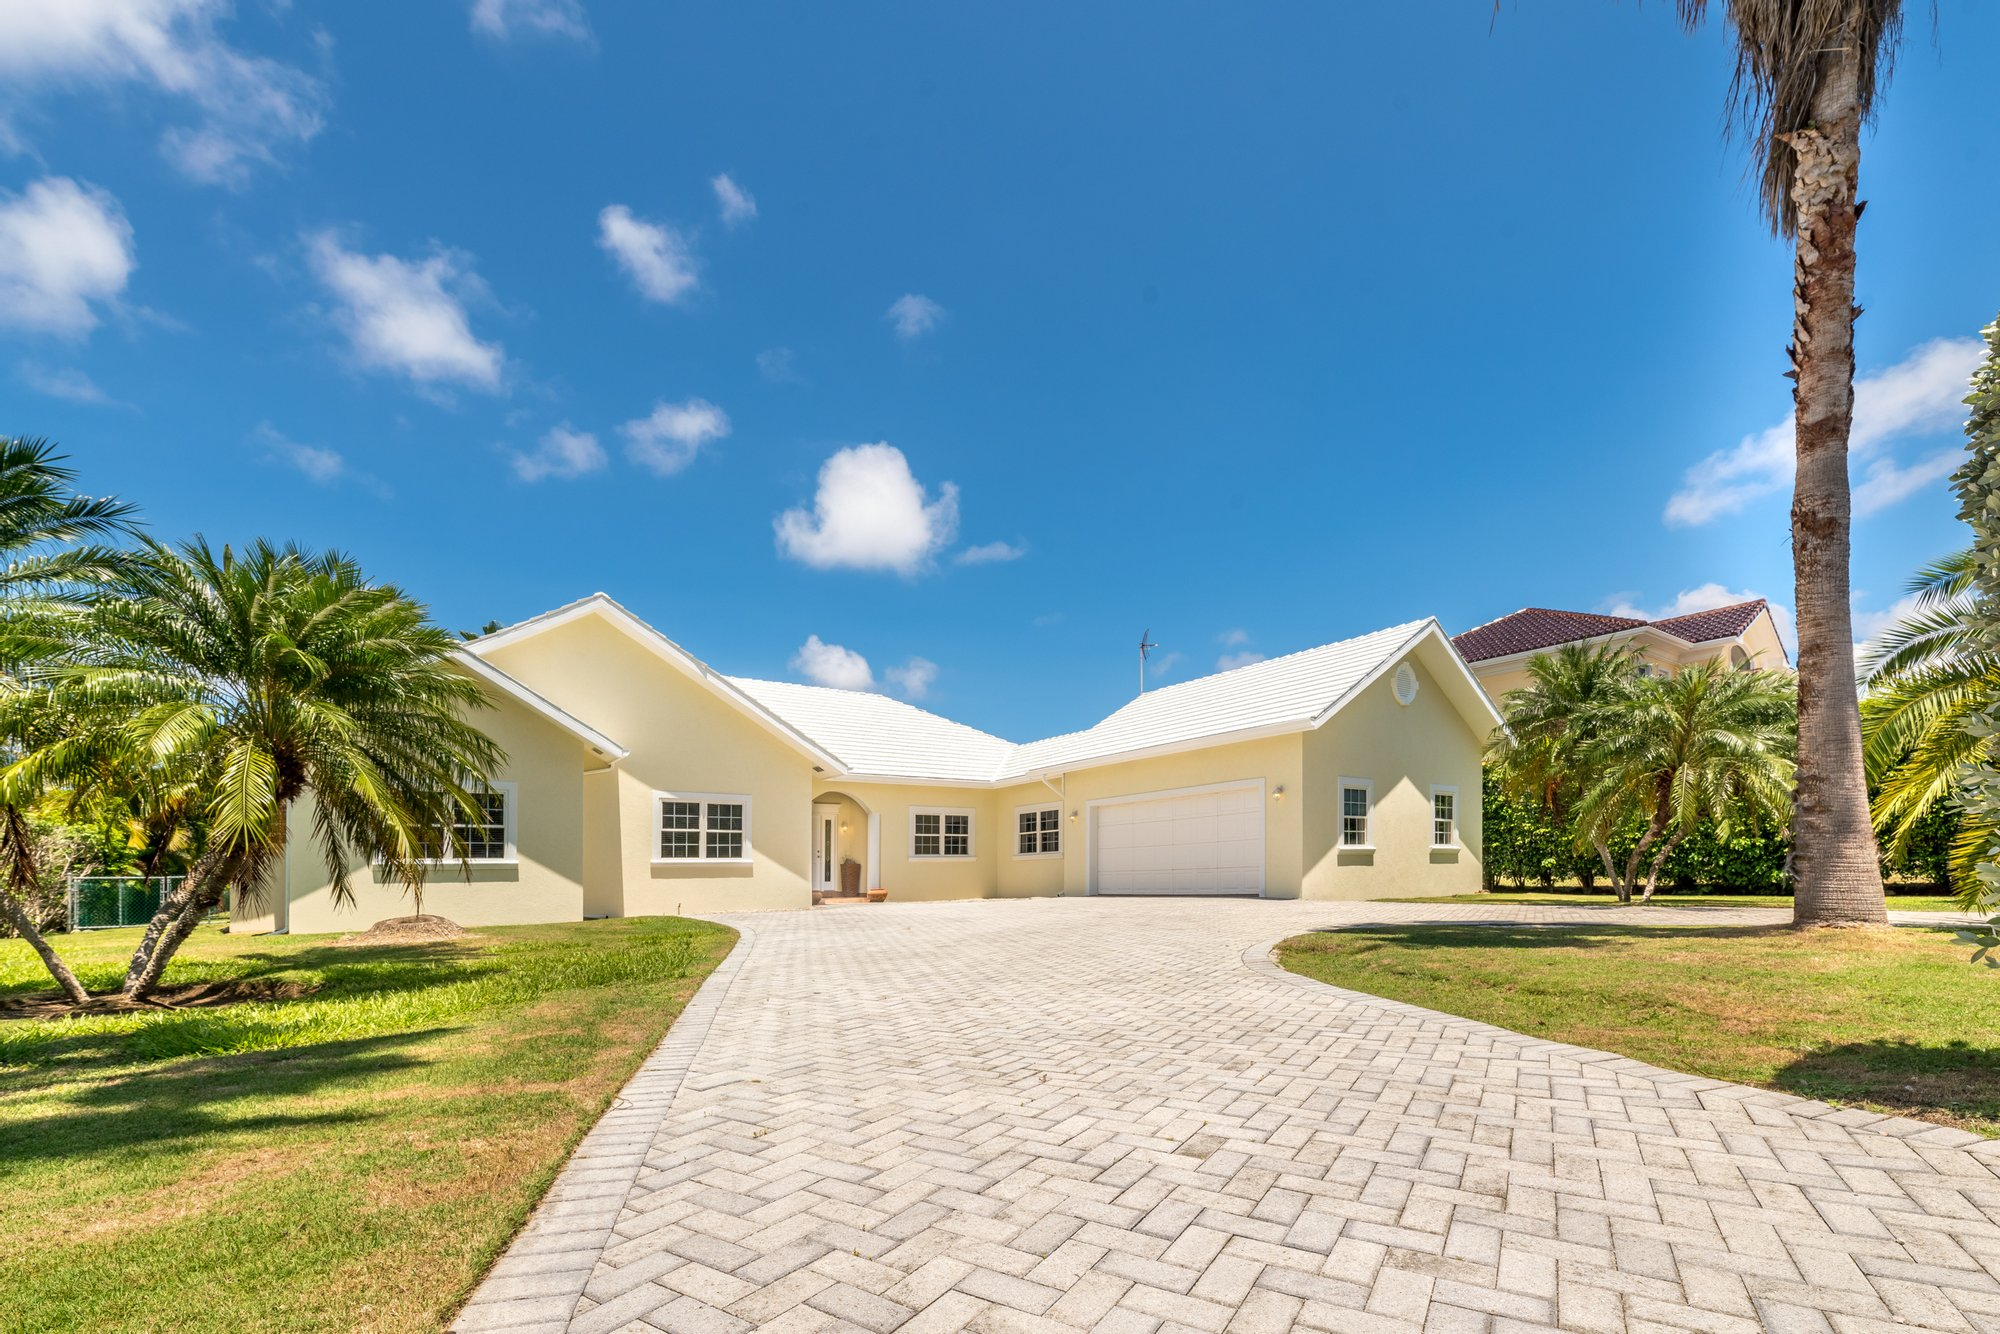 House in George Town, George Town, Cayman Islands 1